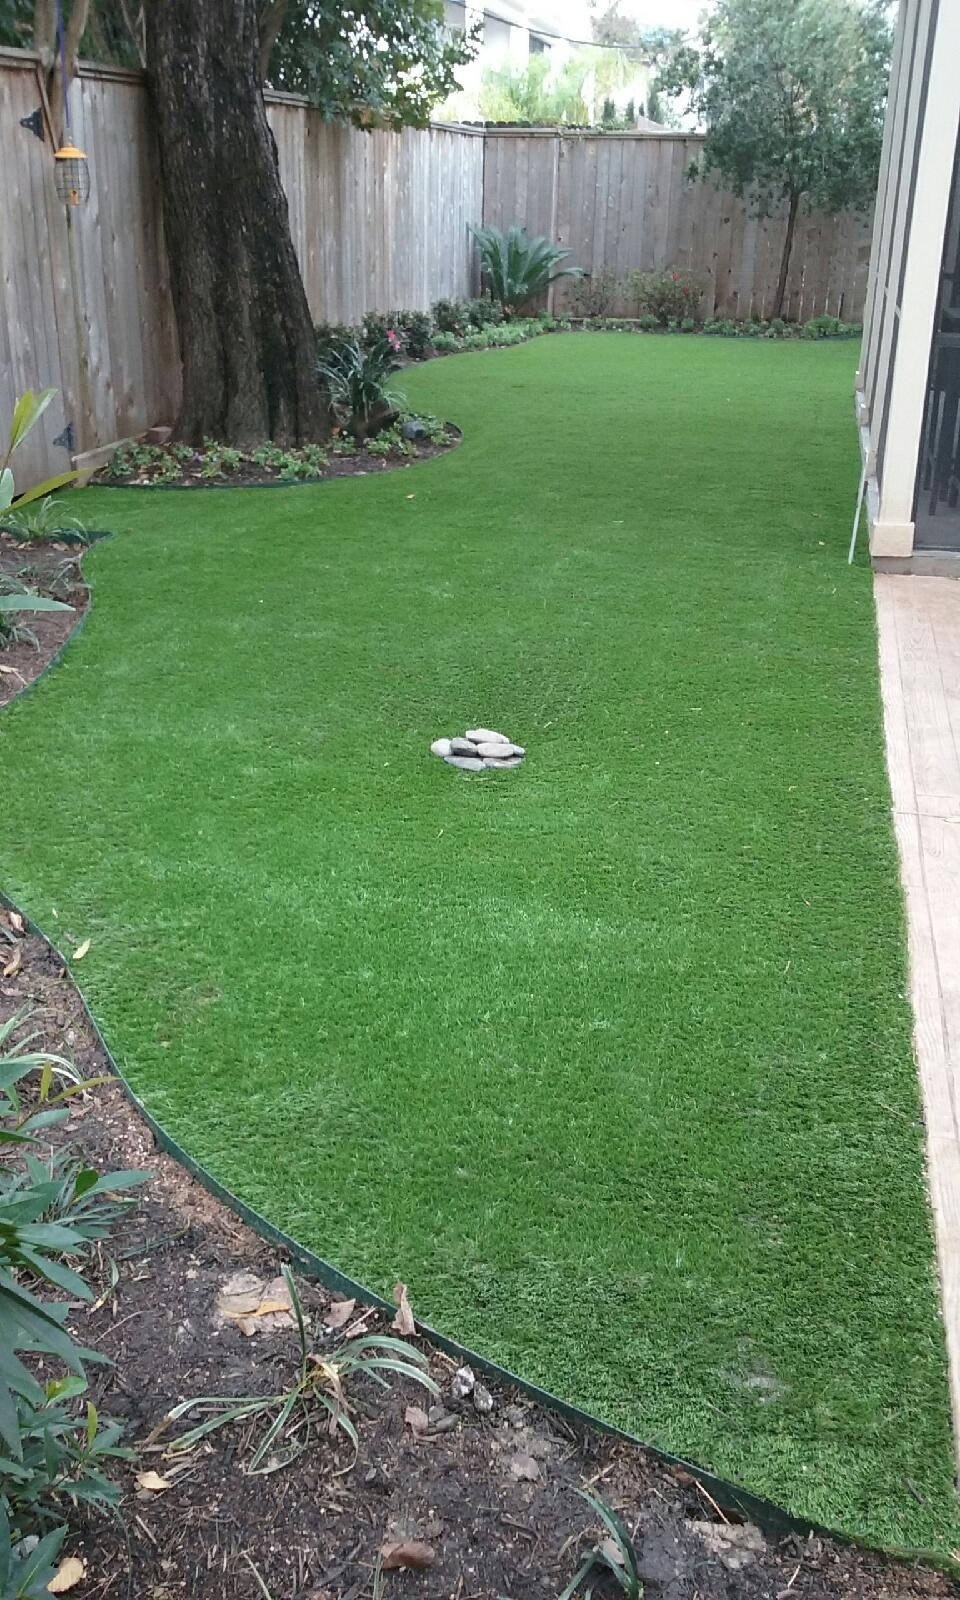 SyntheticTurf2